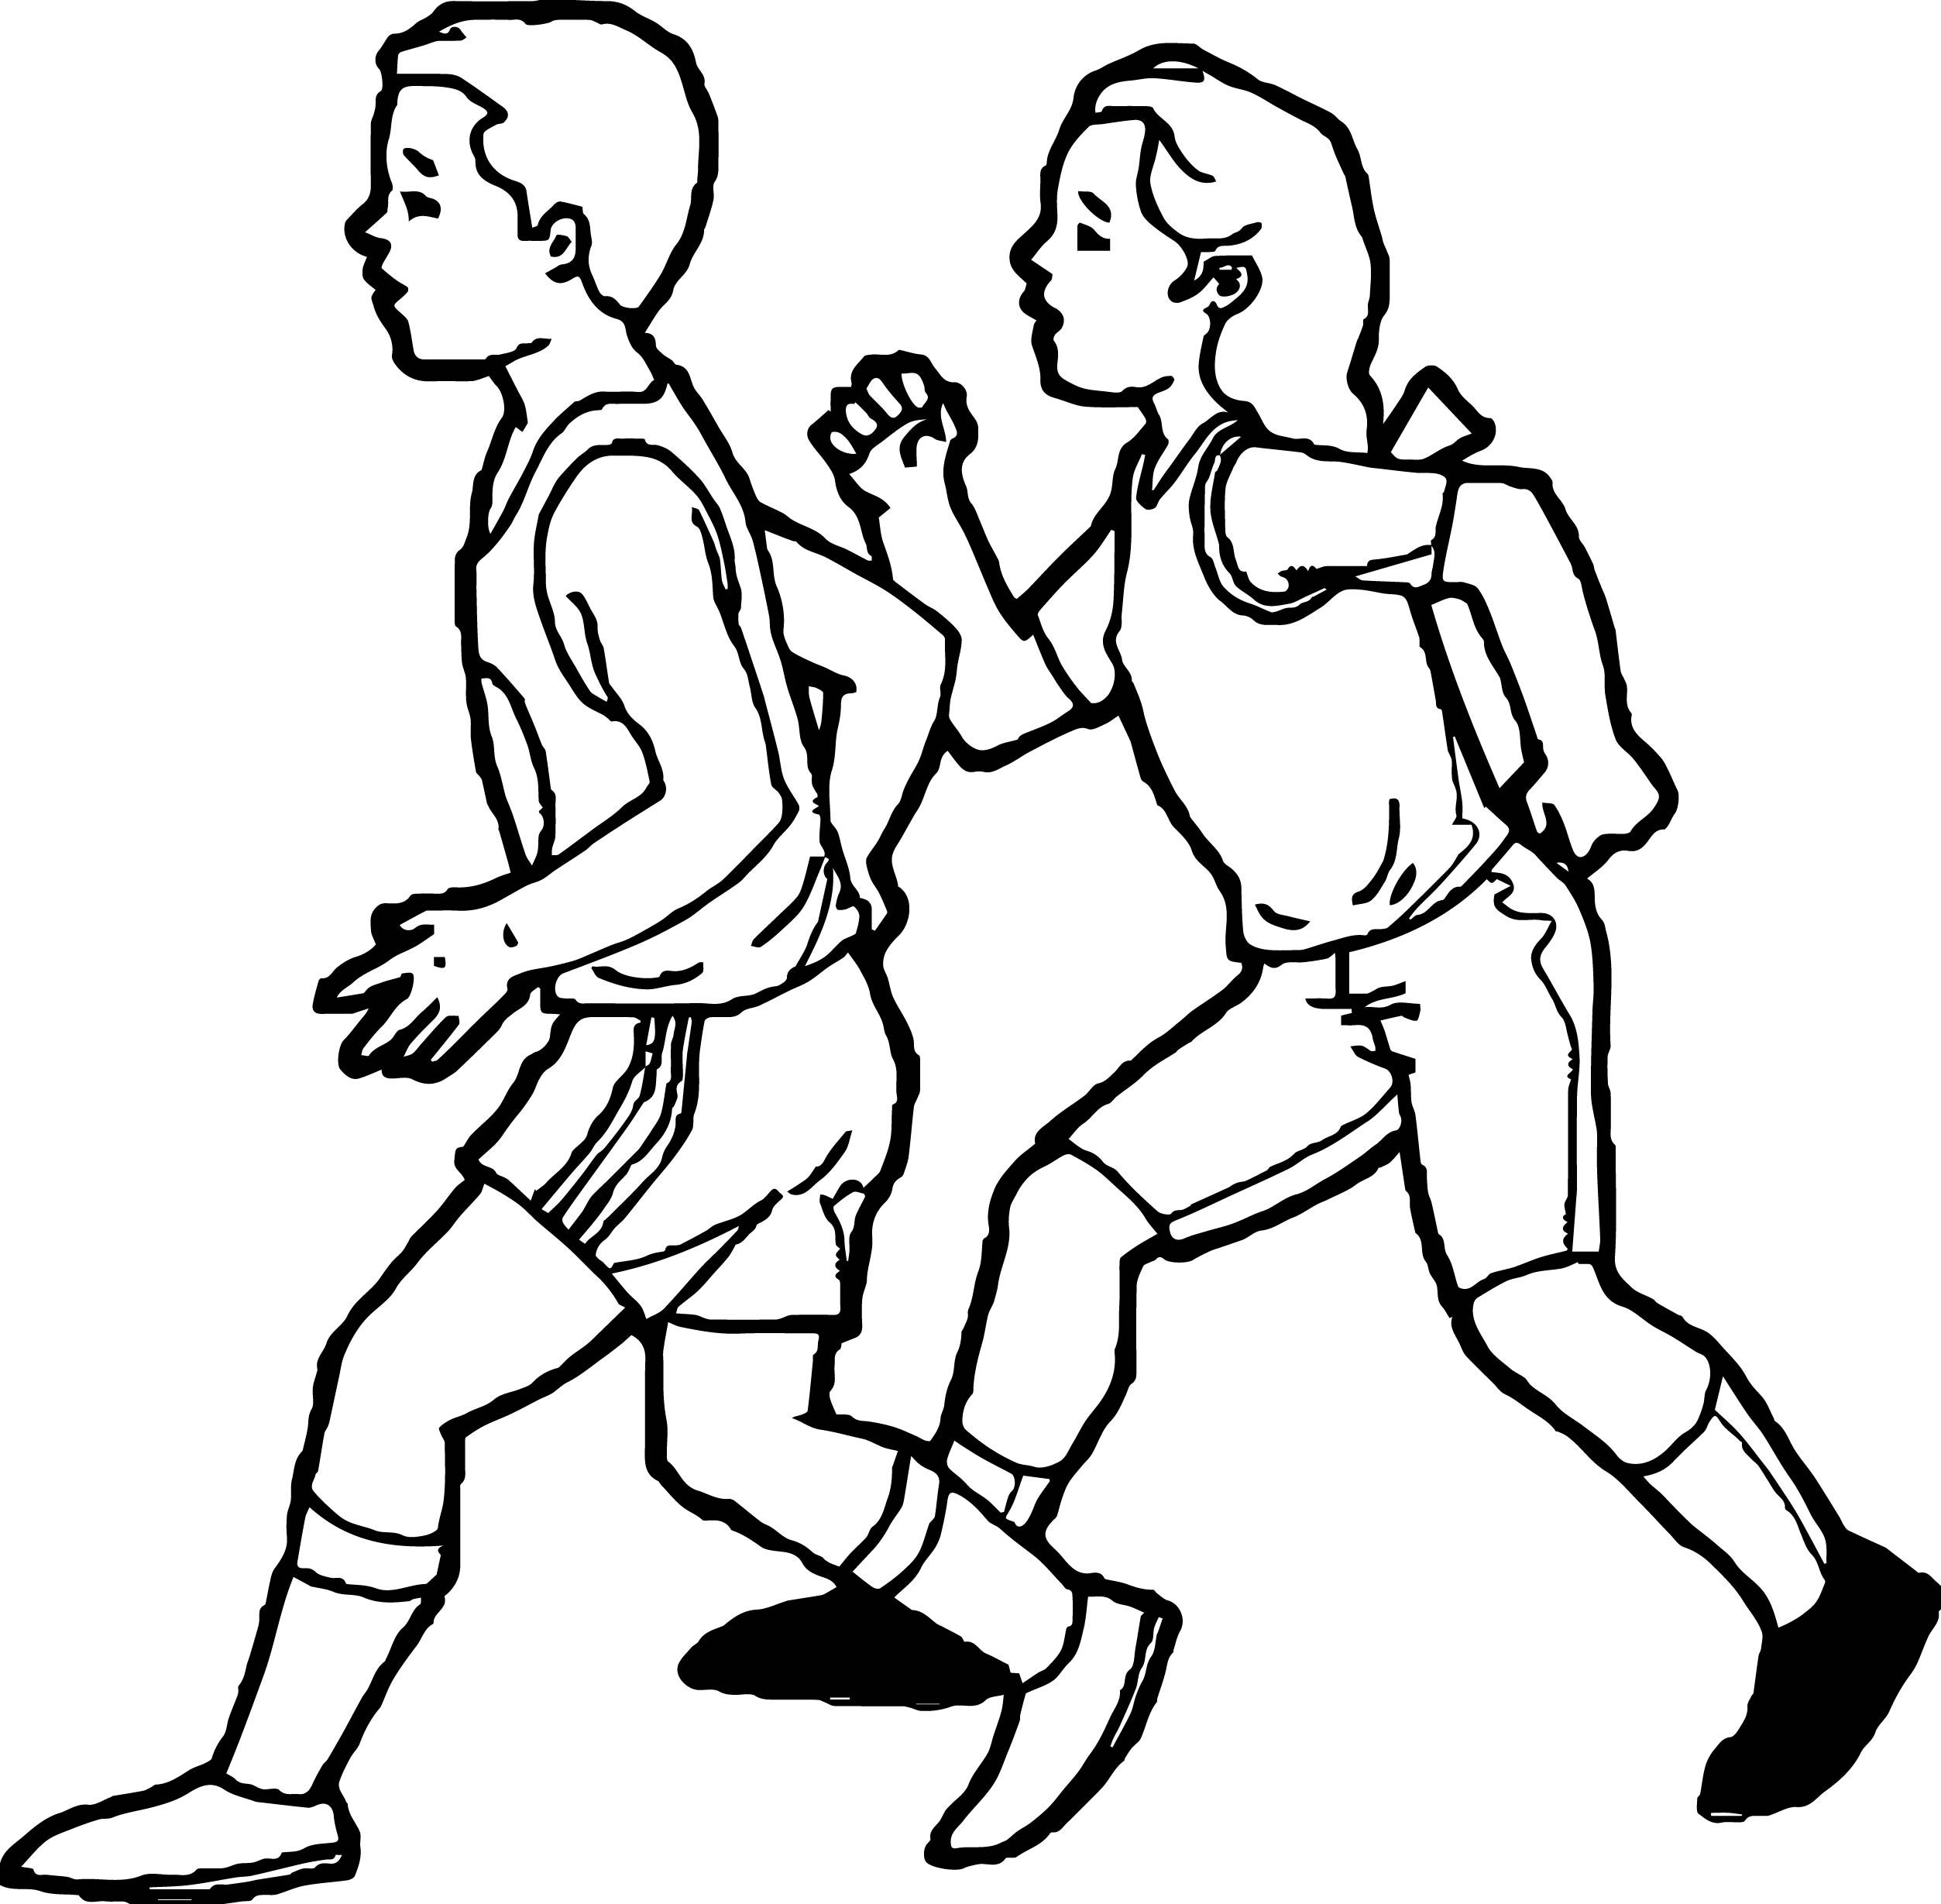 Awesome Physical Activity Coloring Page